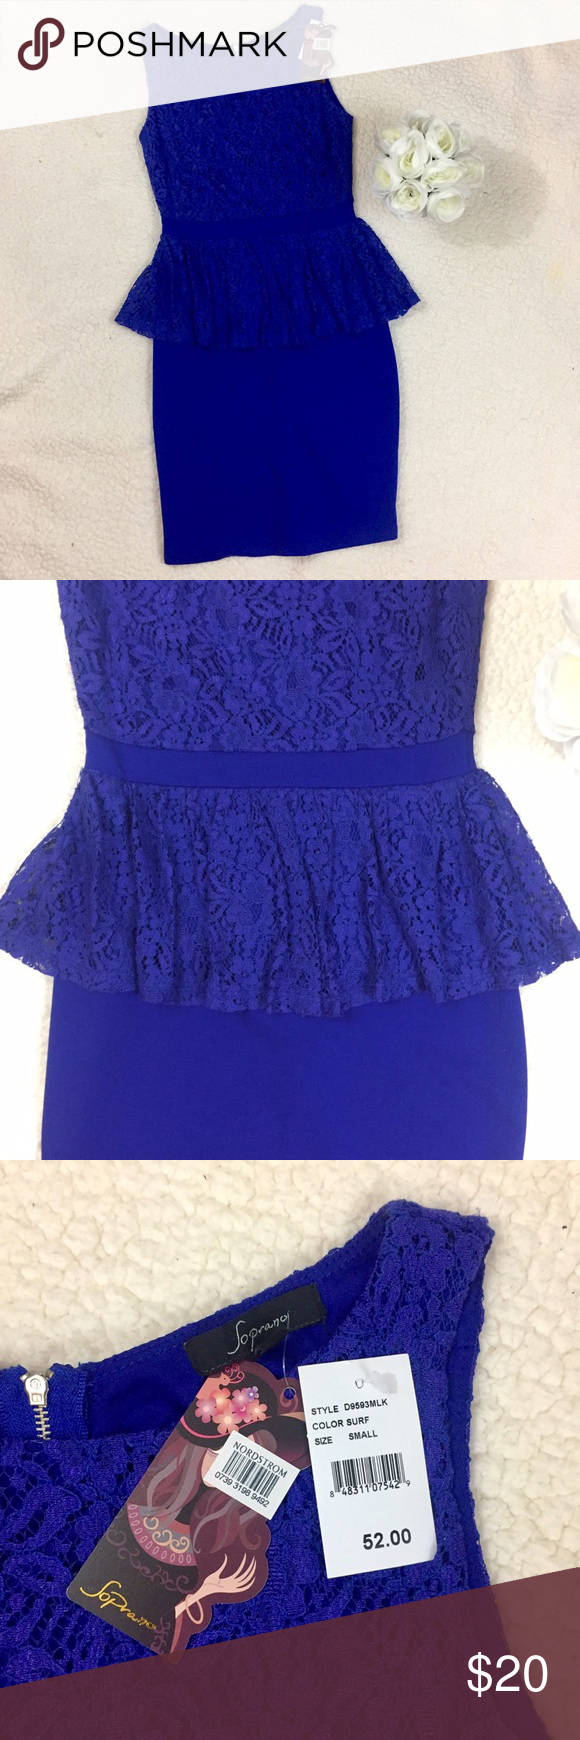 NWT Lace Peplum Nordstrom Dress NWT | Encaje, Beautiful y Cocteles